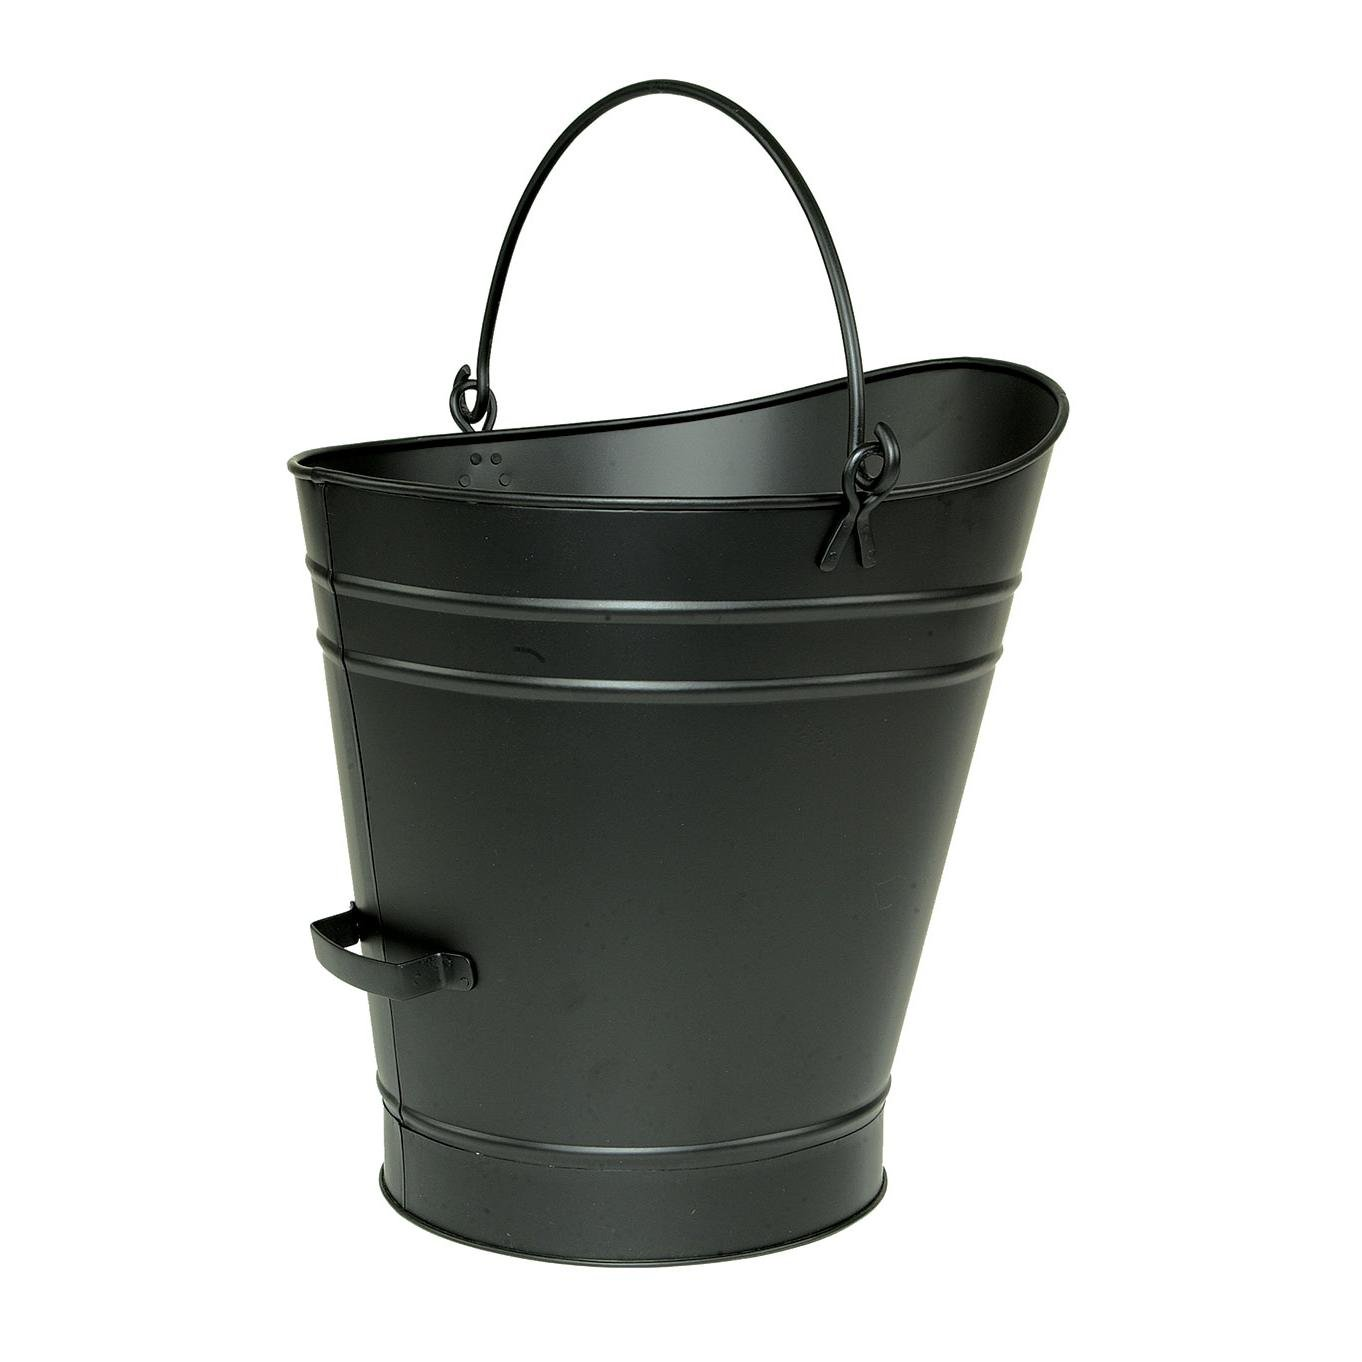 Minuteman International C-66 Coal Hod/Pellet Bucket, Large